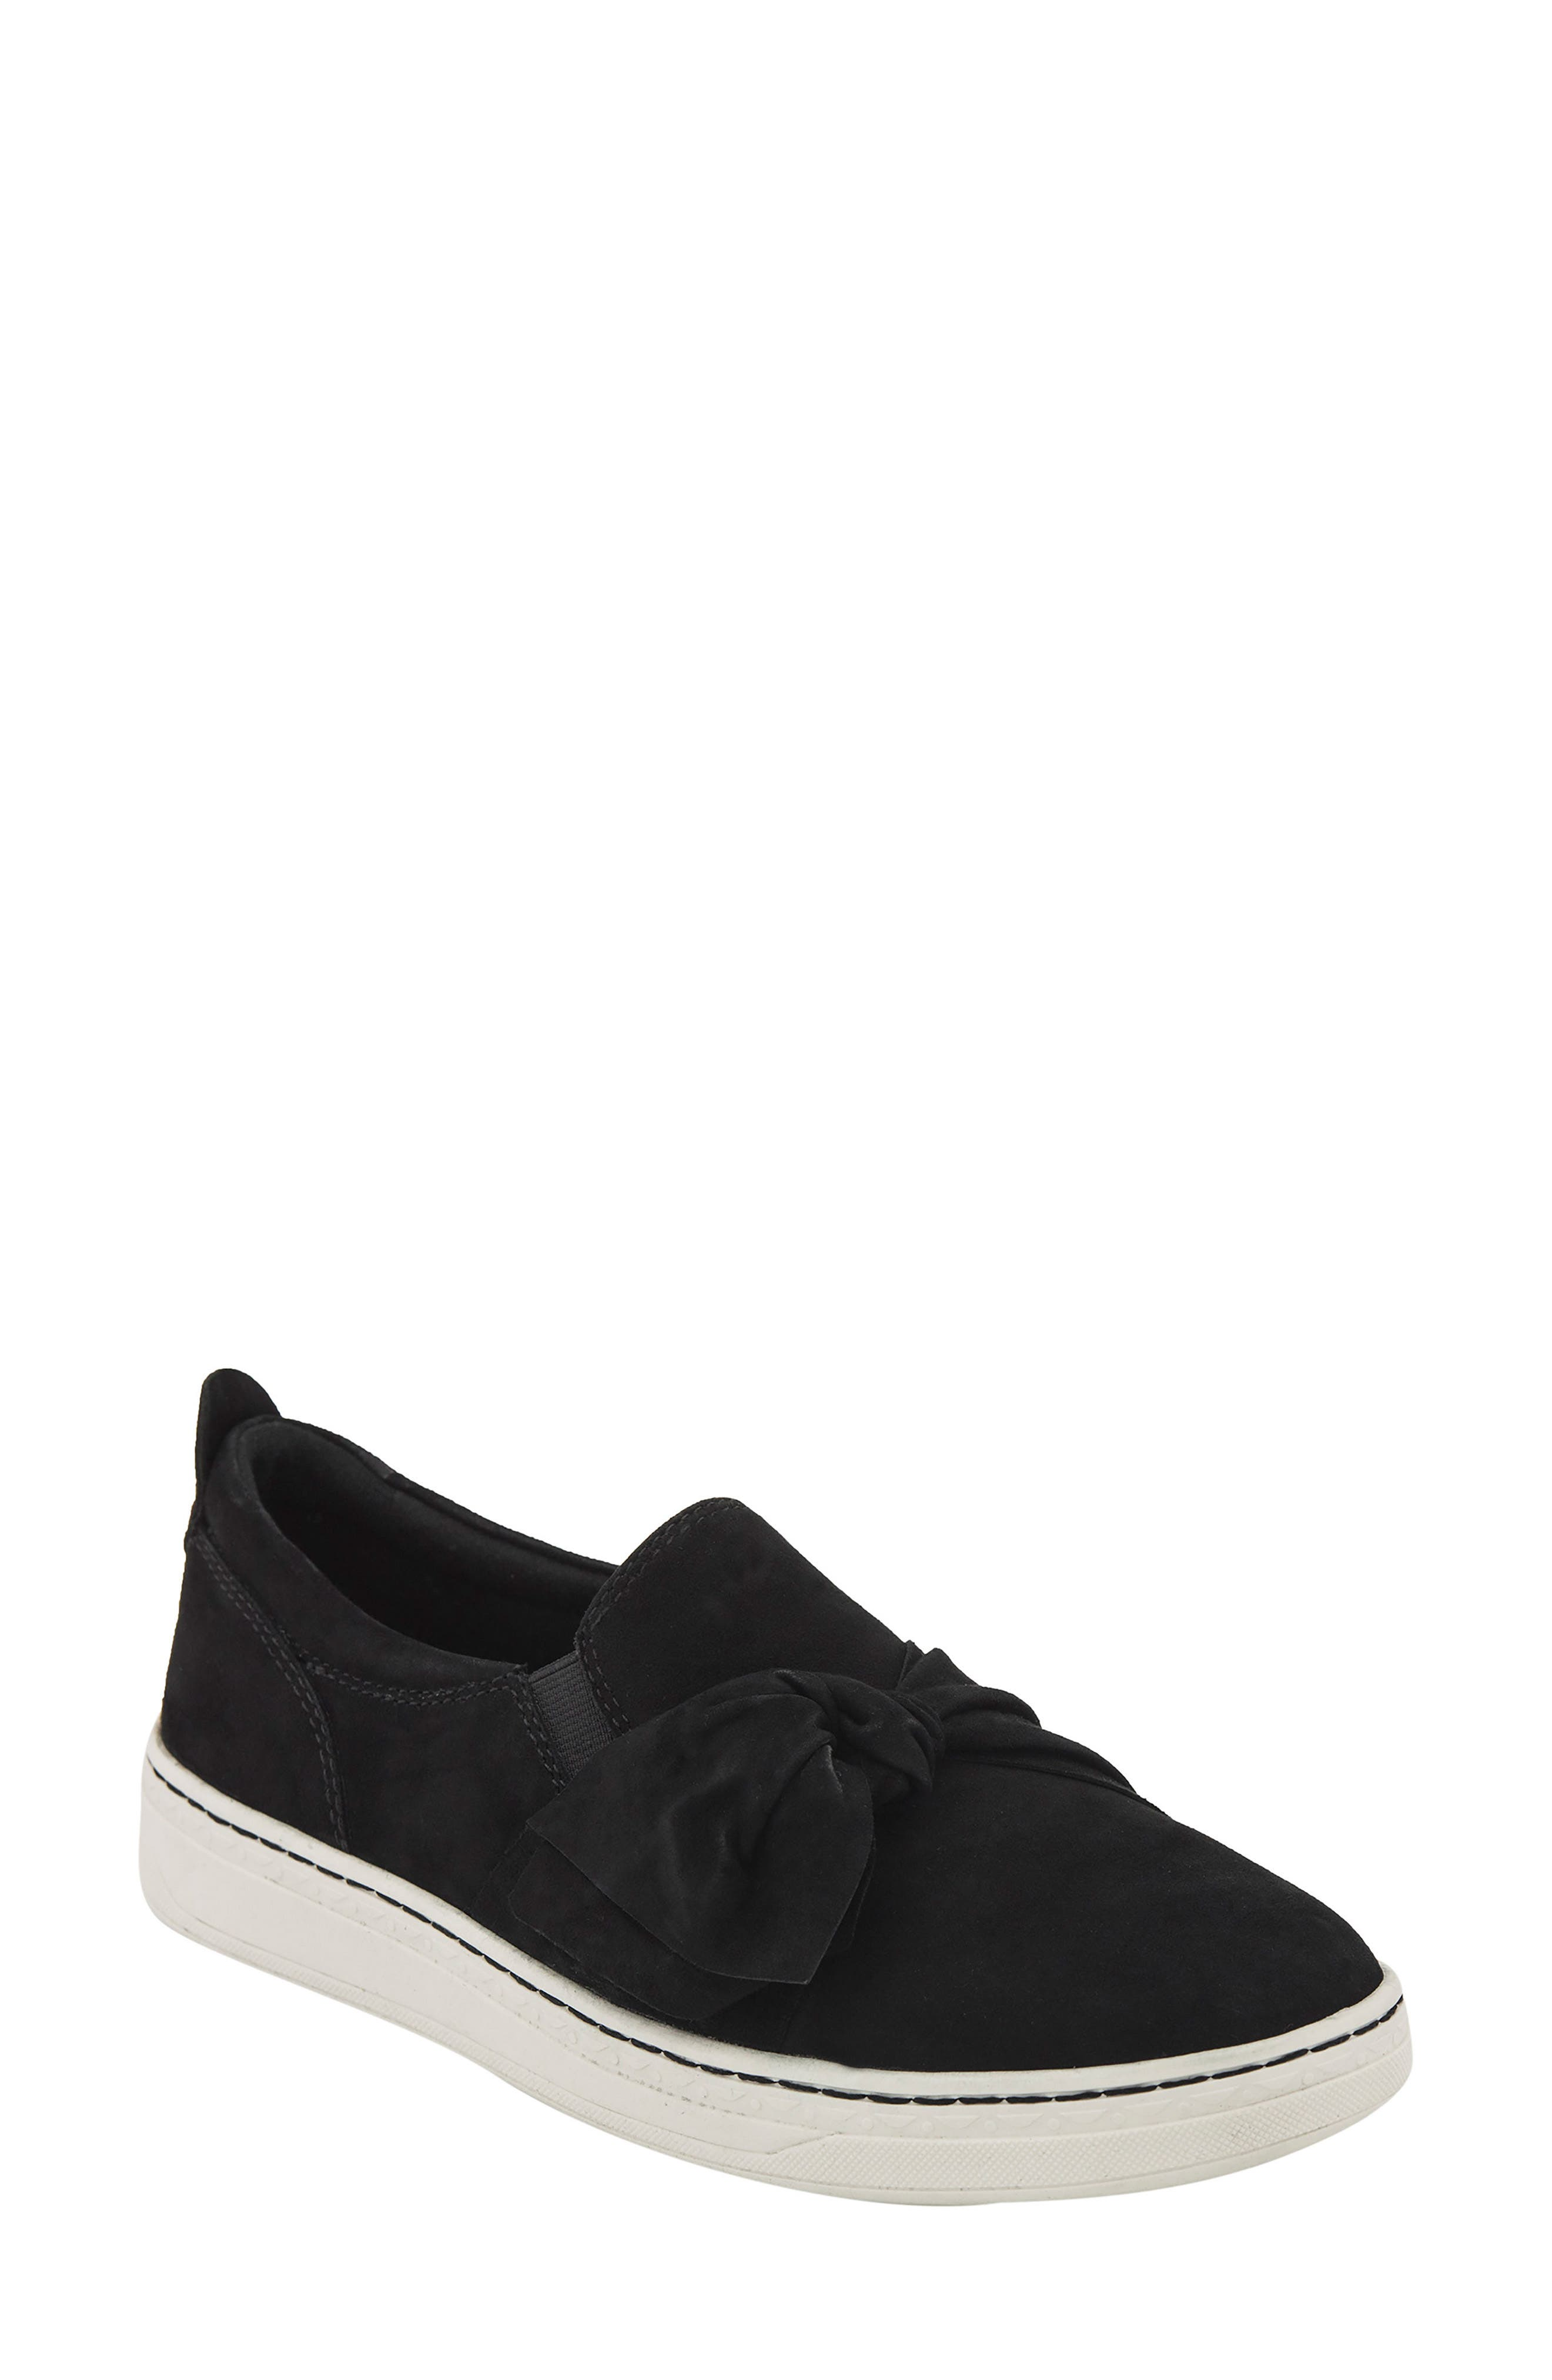 Zoey Slip-On,                         Main,                         color, Black Suede Fabric